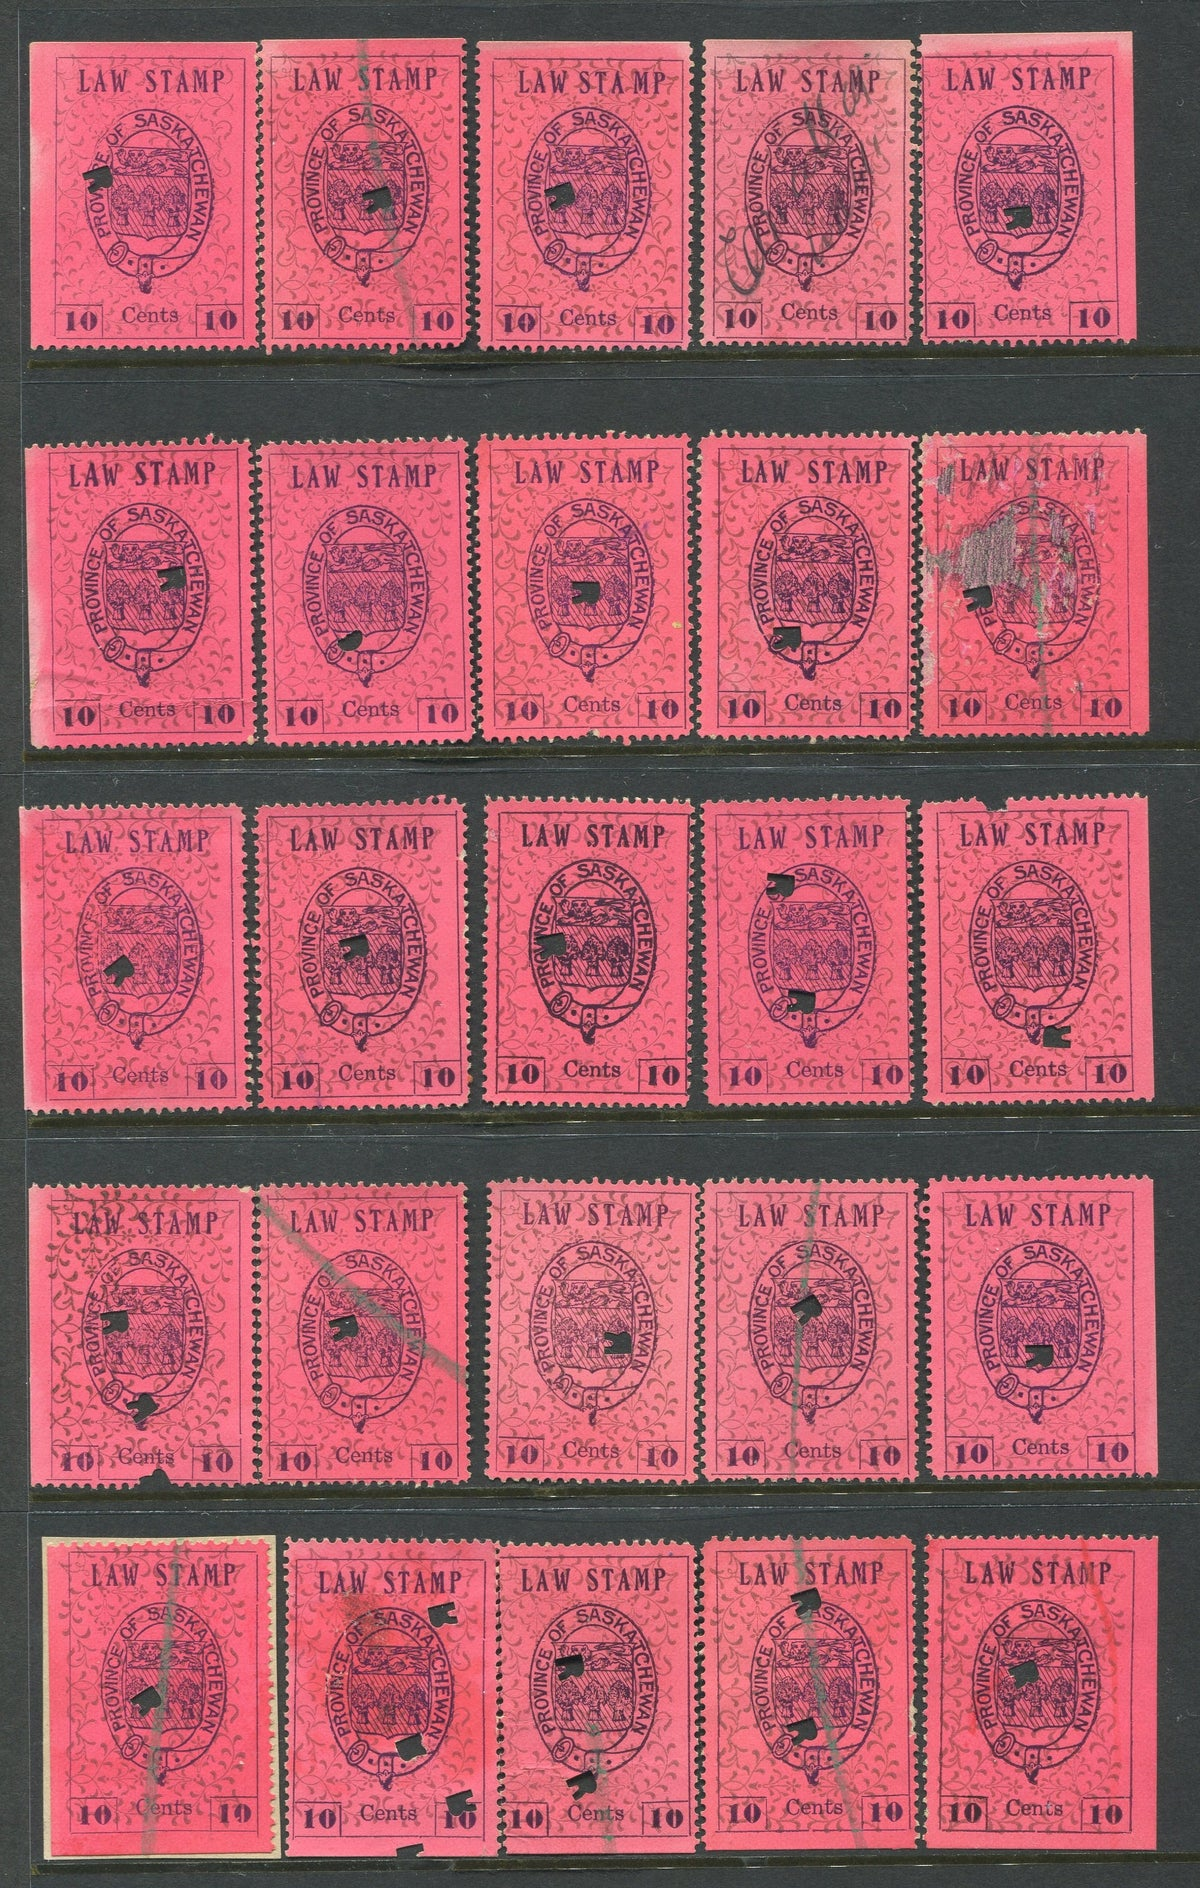 0002SL1709 - SL2 - Used Reconstructed Sheet - Deveney Stamps Ltd. Canadian Stamps